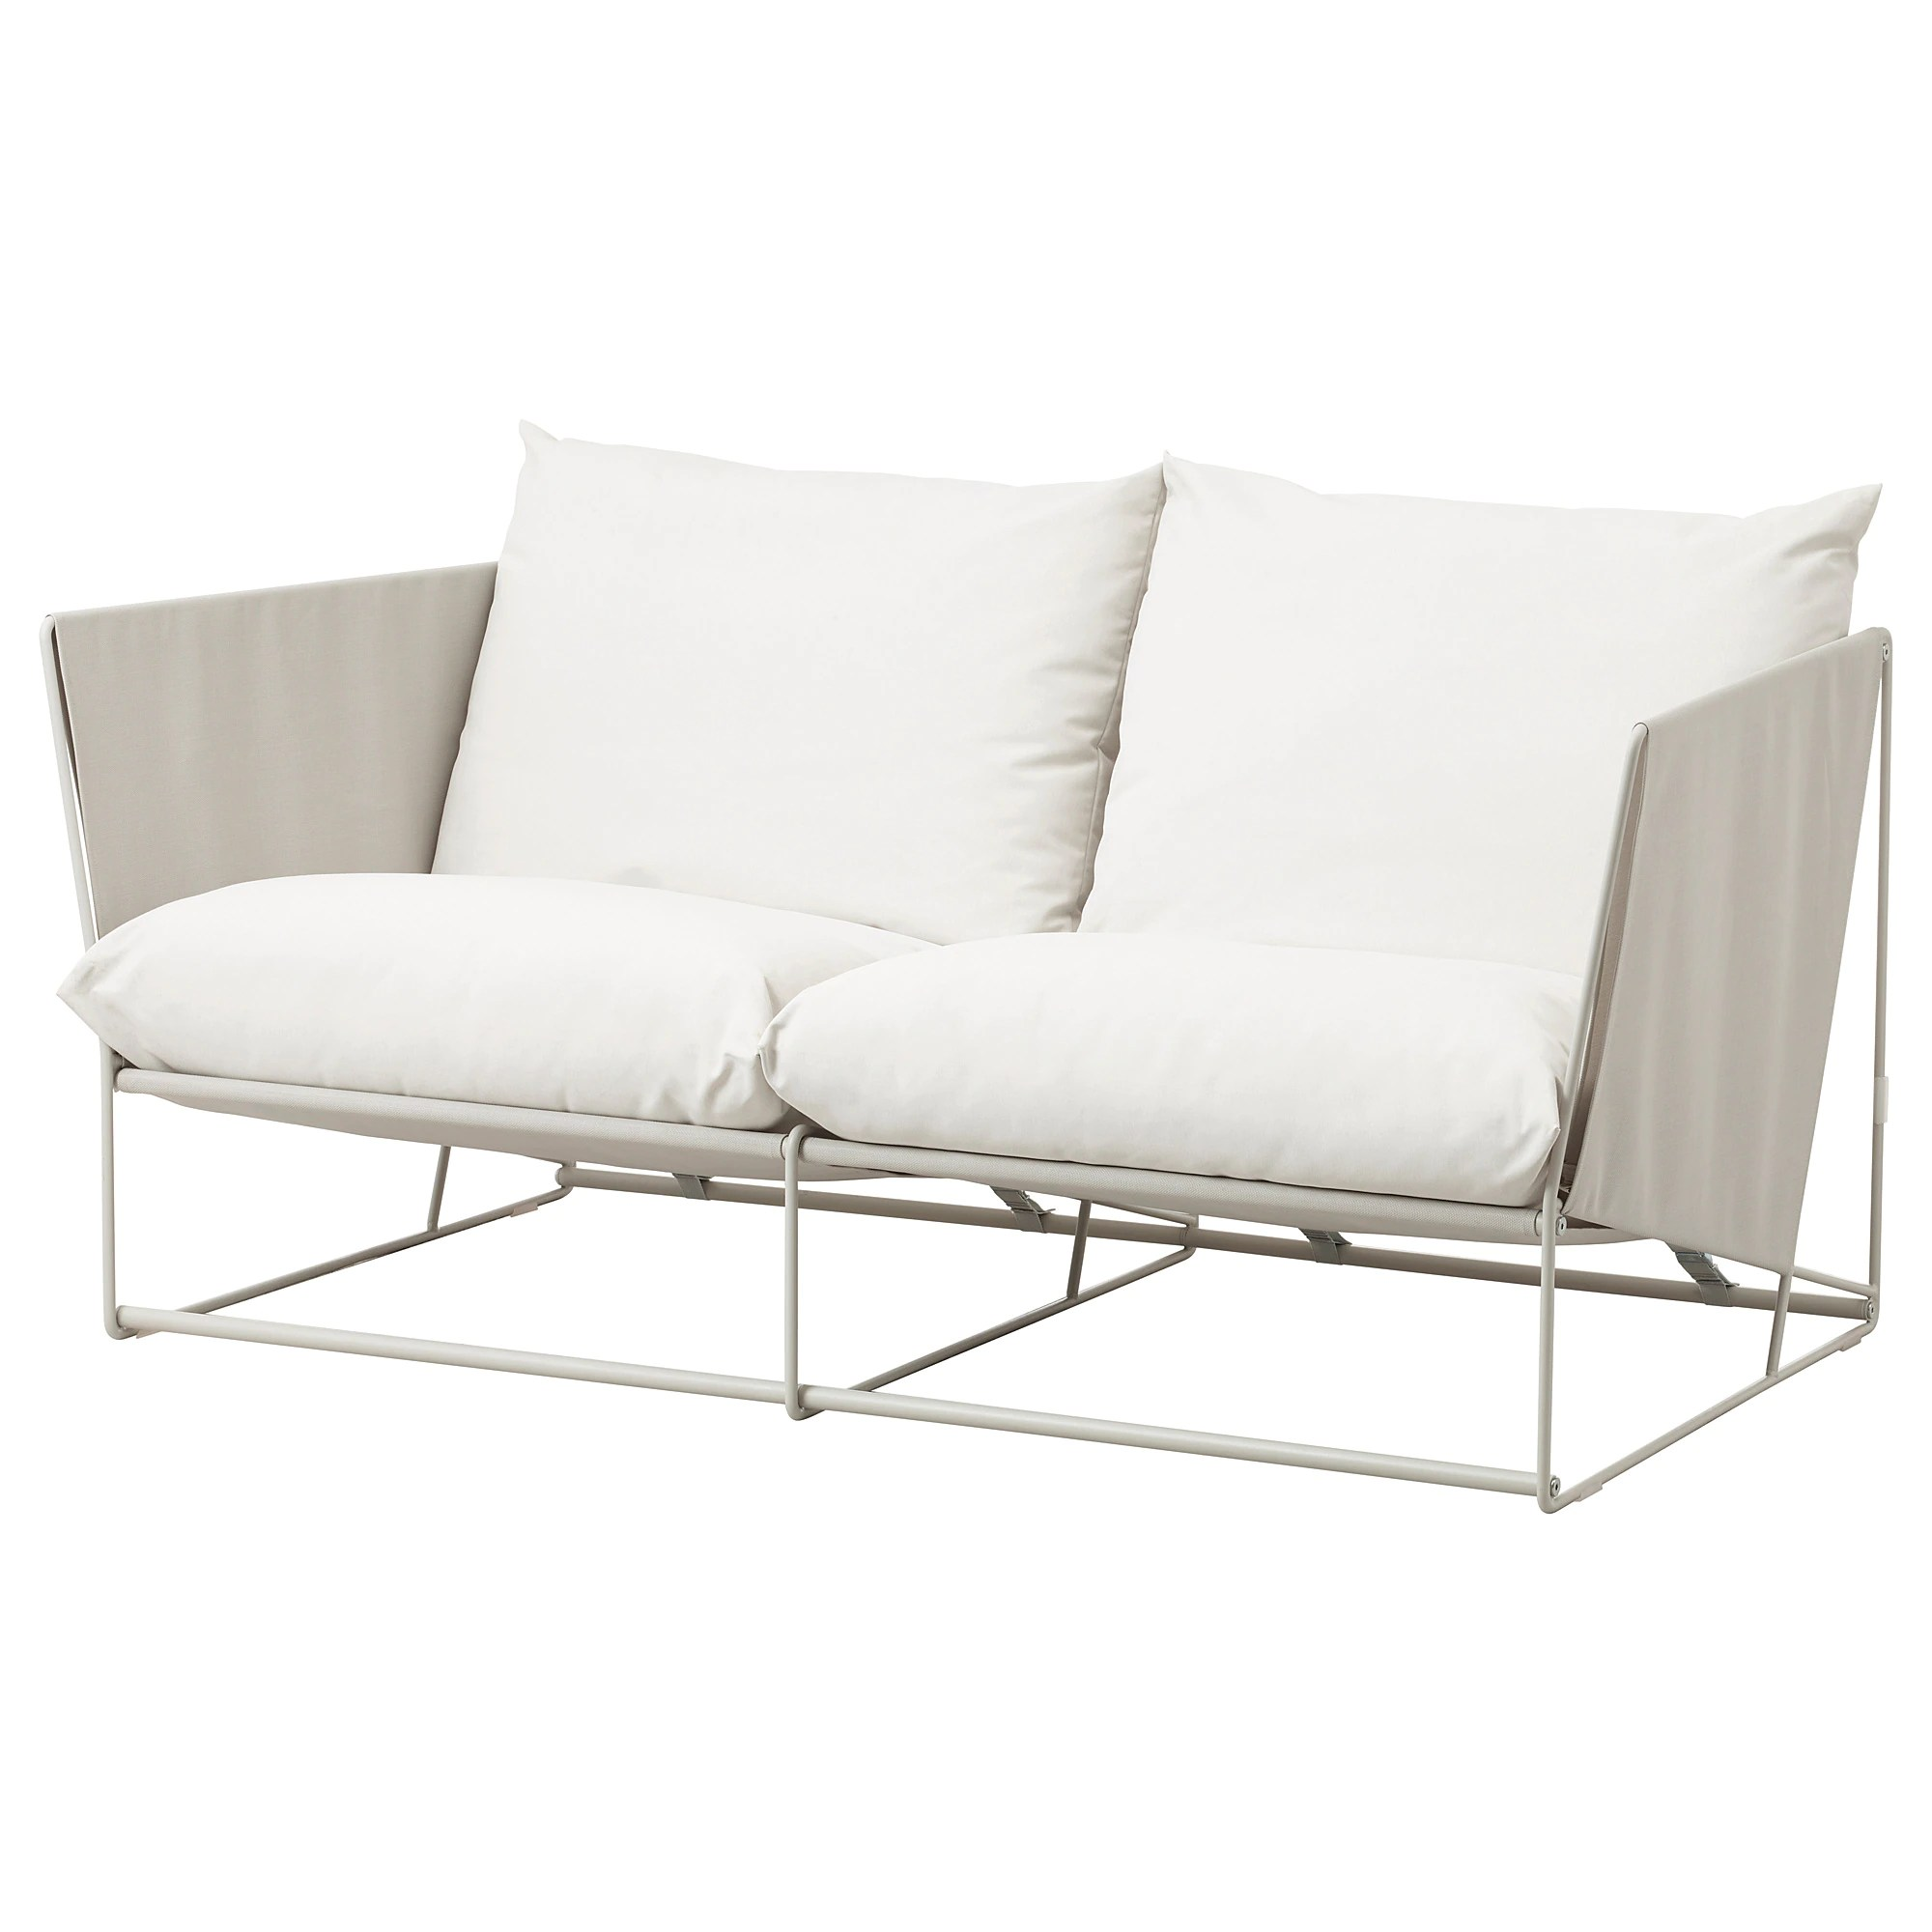 Ikea Loveseat Havsten Loveseat In Outdoor Beige